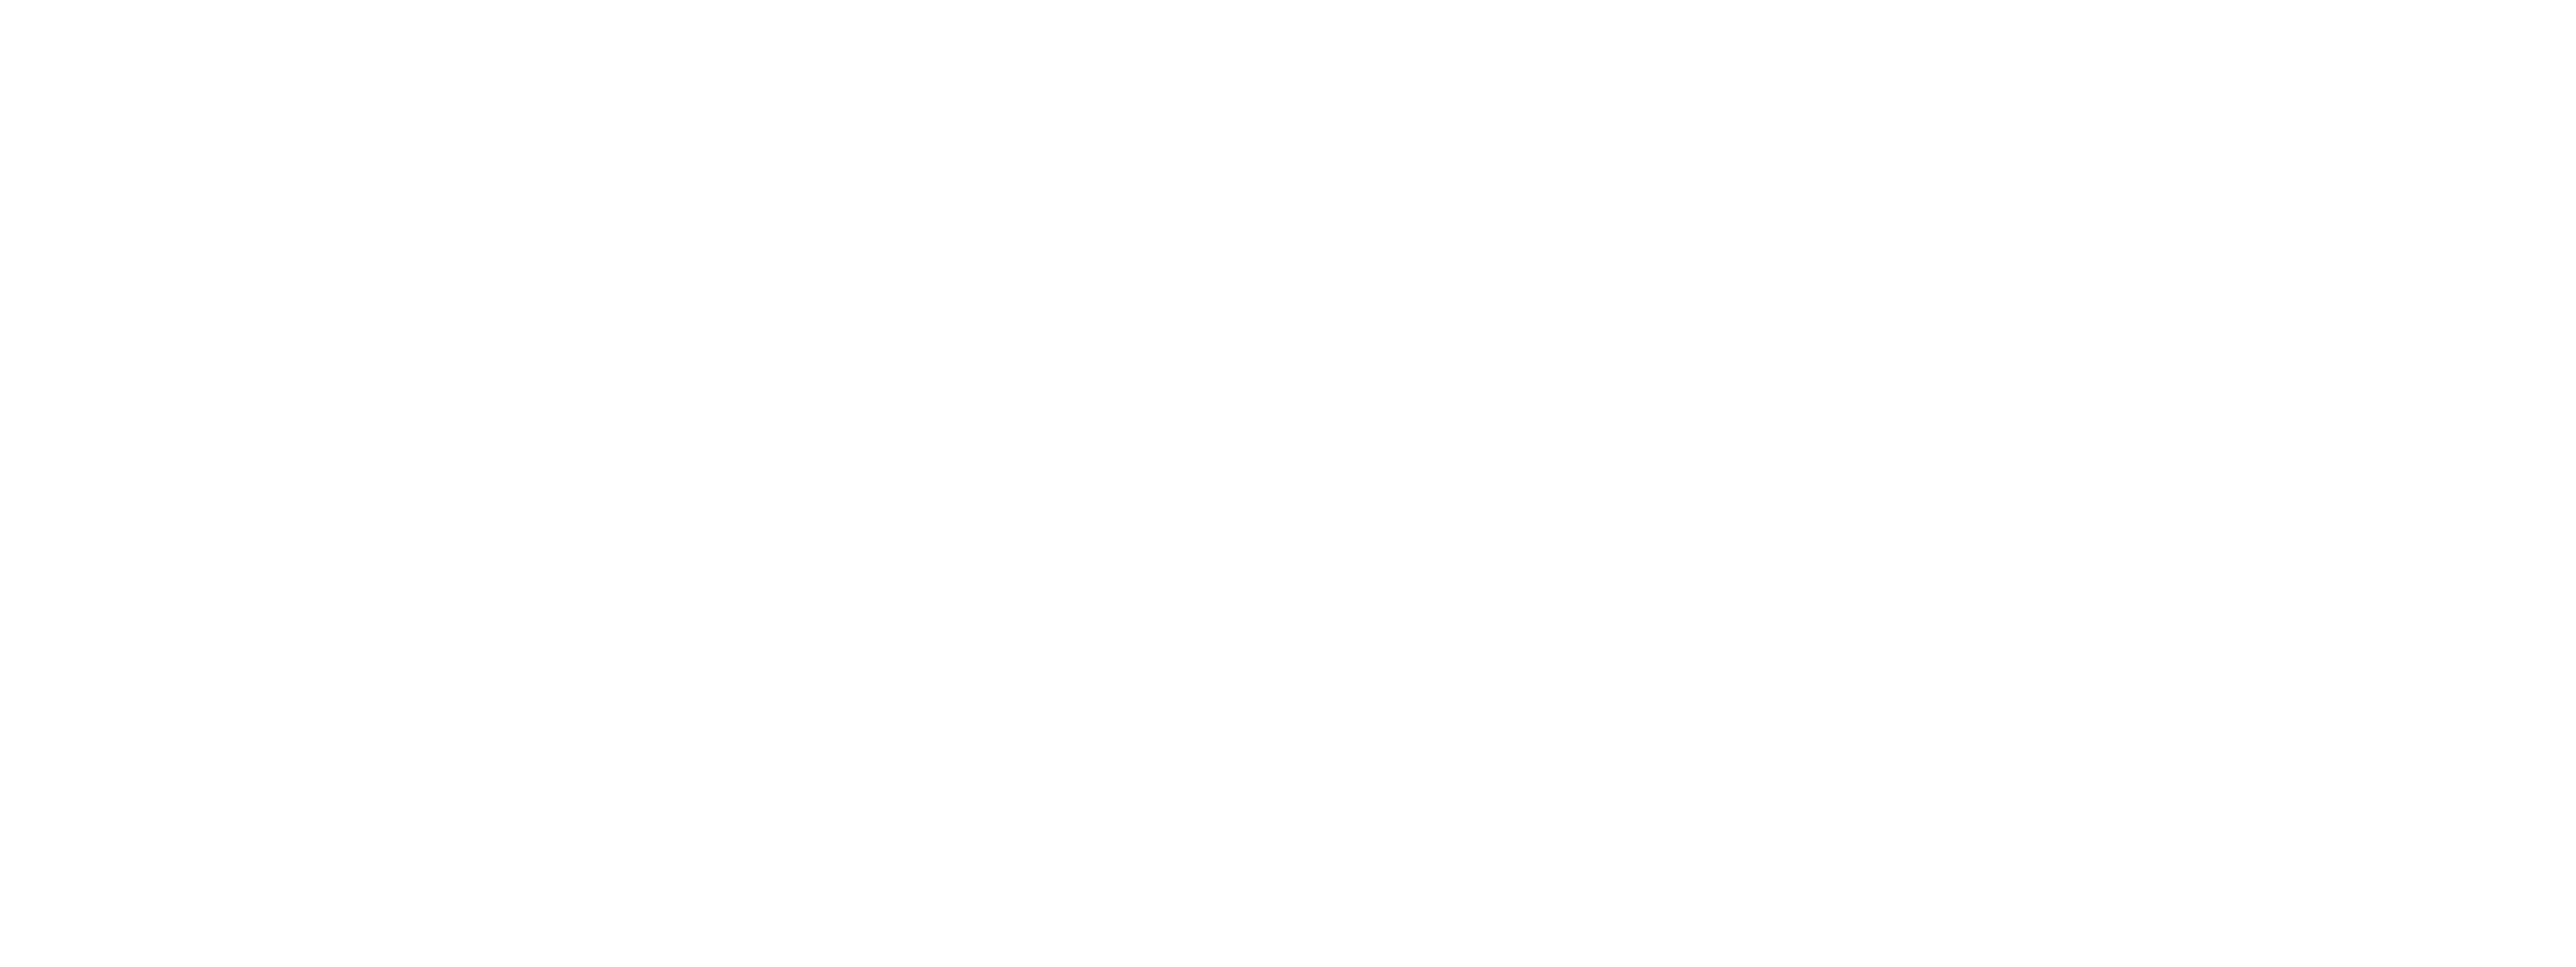 American Trigger Pullers